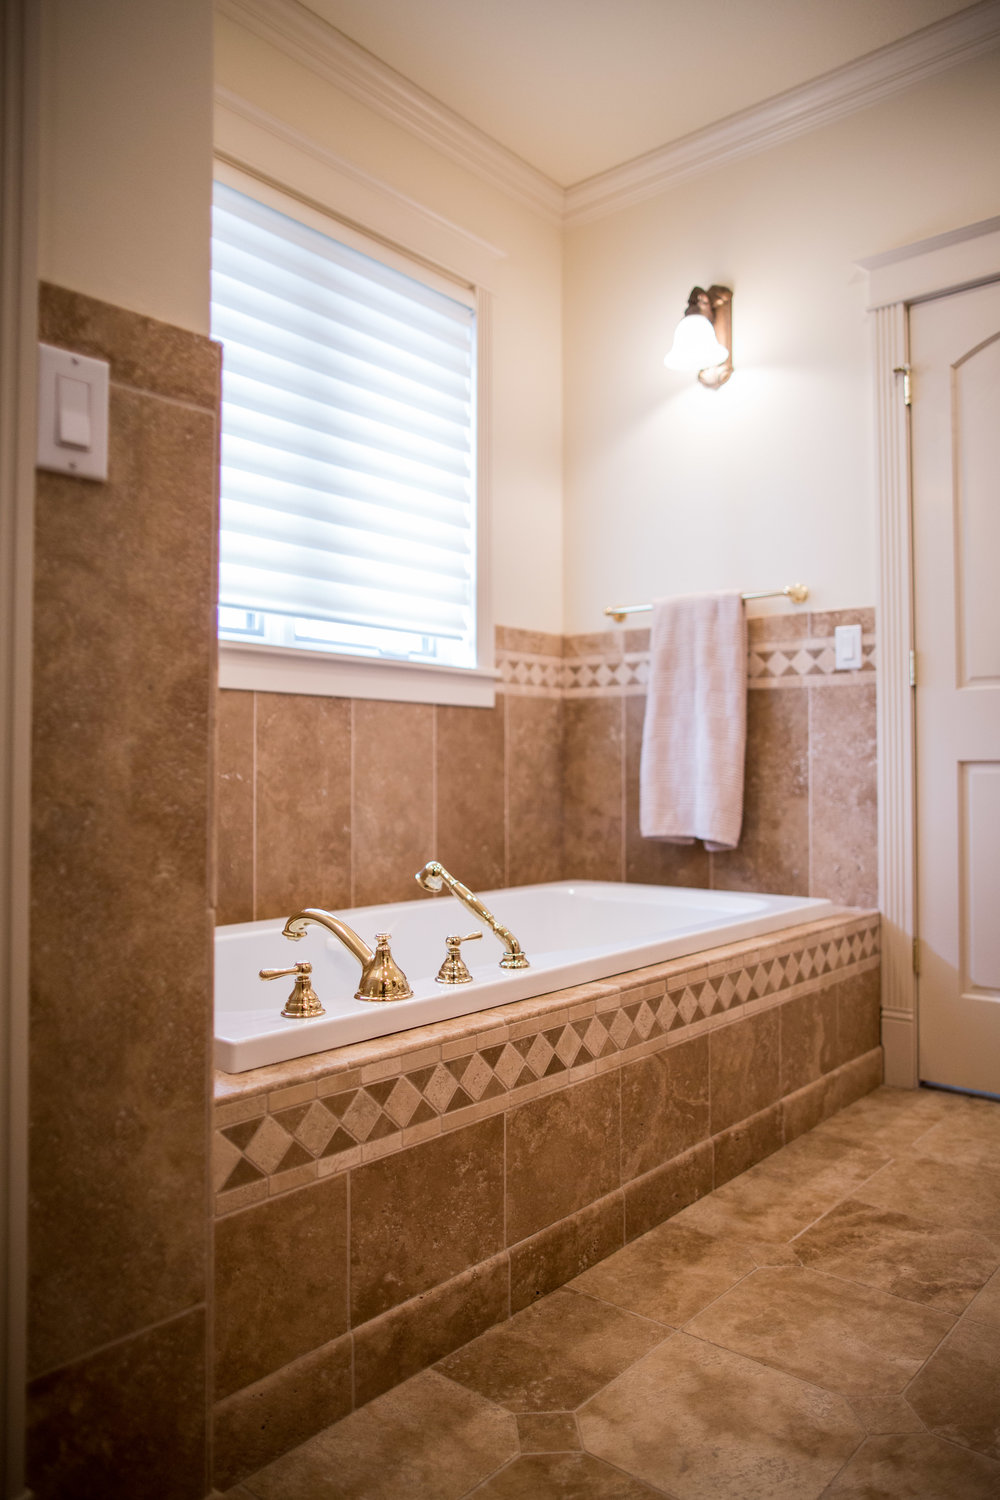 MASTER BATHROOM - EXTRA LONG JETTED TUB